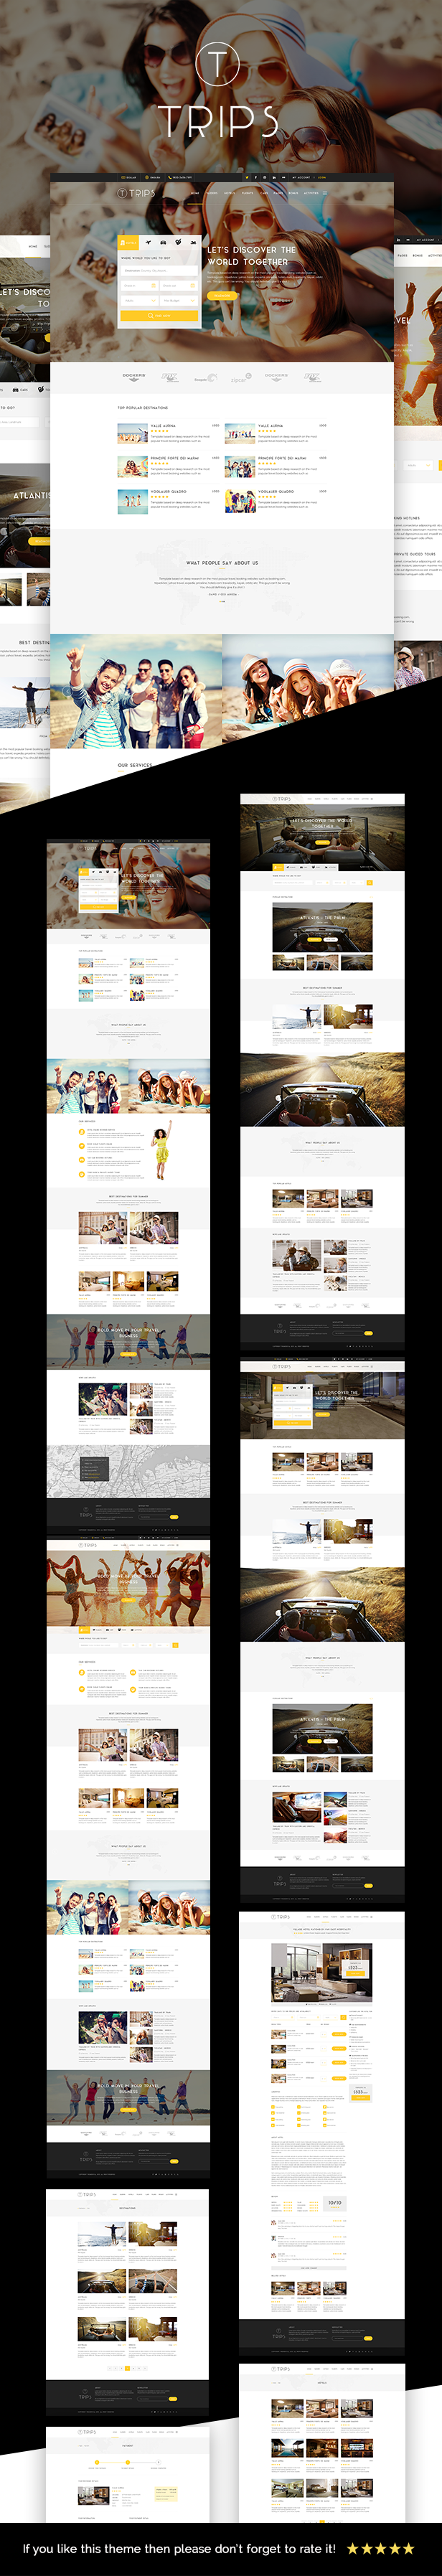 Trips - Travel Hotel Booking WordPress Theme